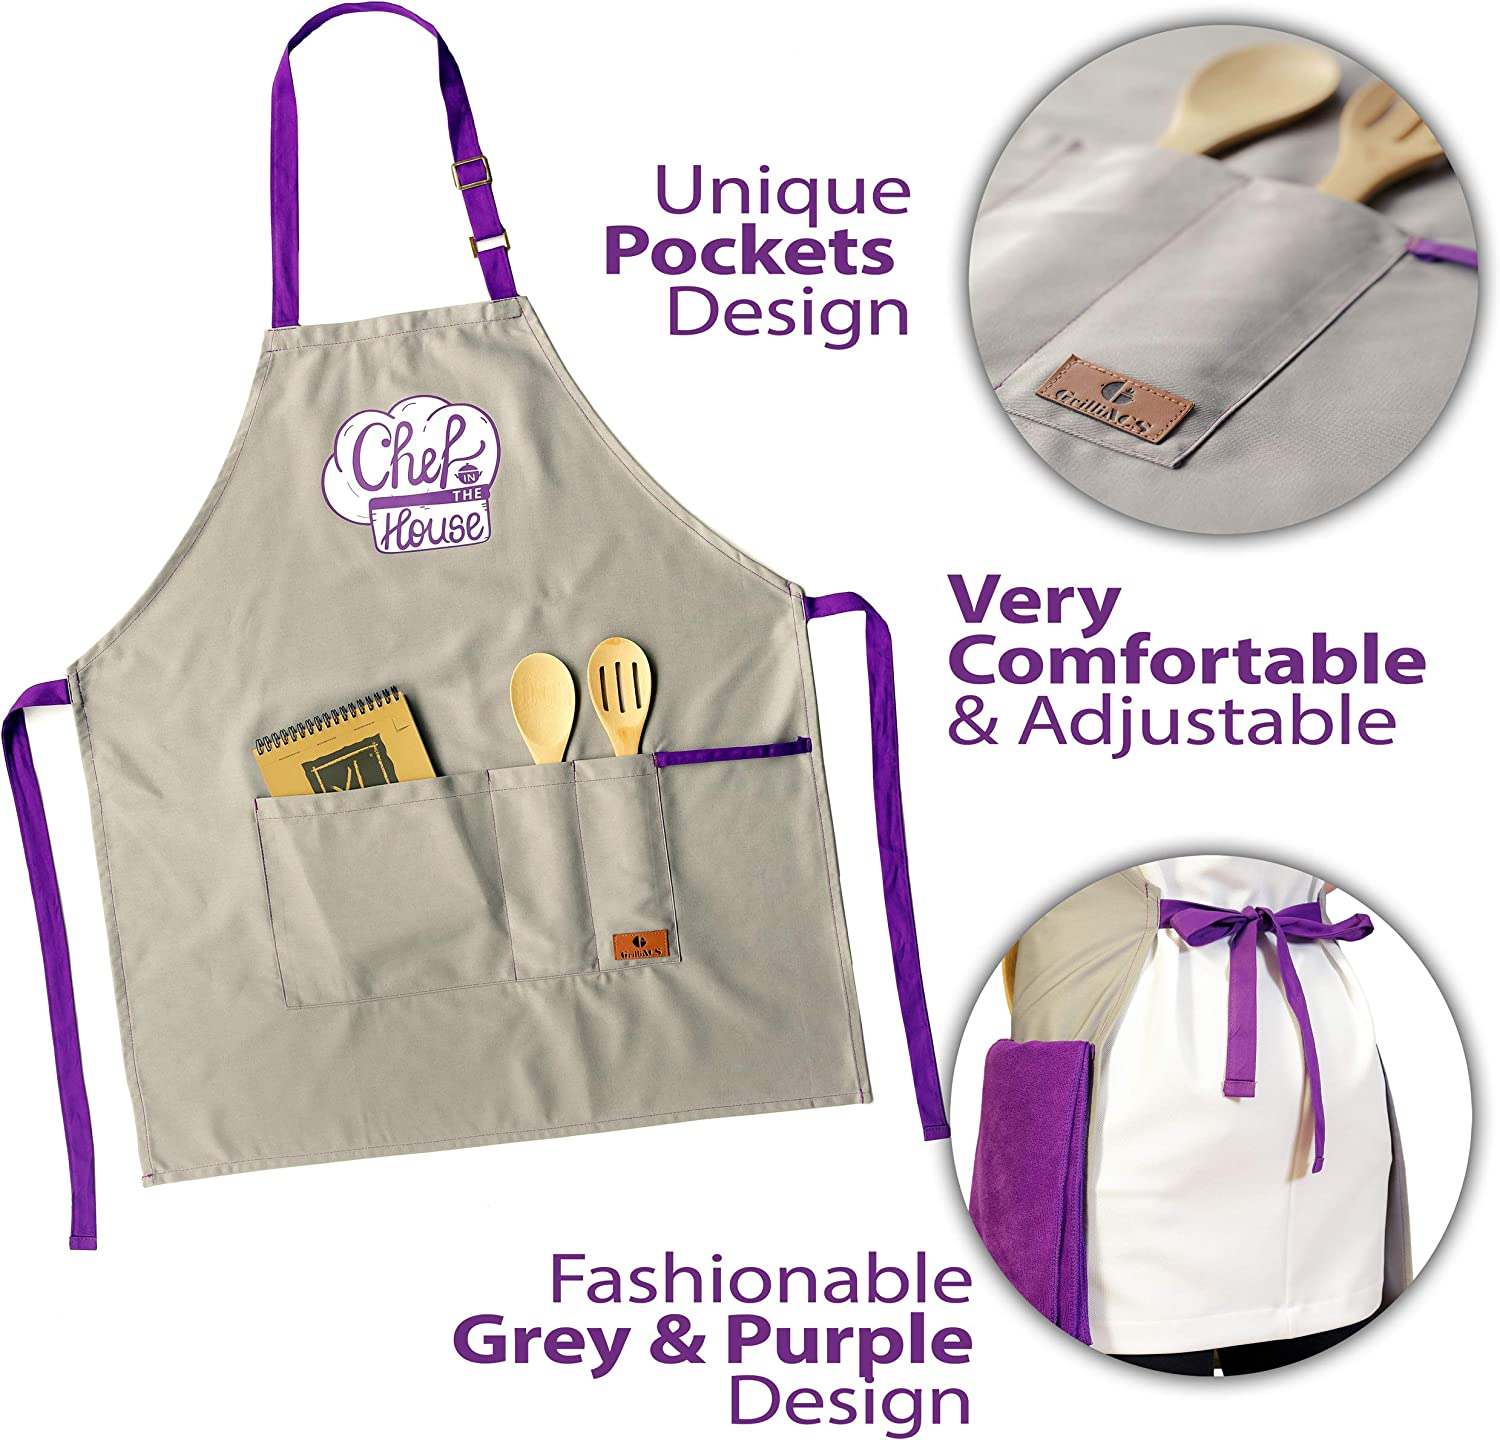 Christmas Husband GrilliACS Apron for Kitchen Chef Aprons for Women with 3 Pockets Wife Mother/'s Day Dad Birthday Purple Towel Thanksgiving Gifts for Mom Funny Cooking Aprons for Women